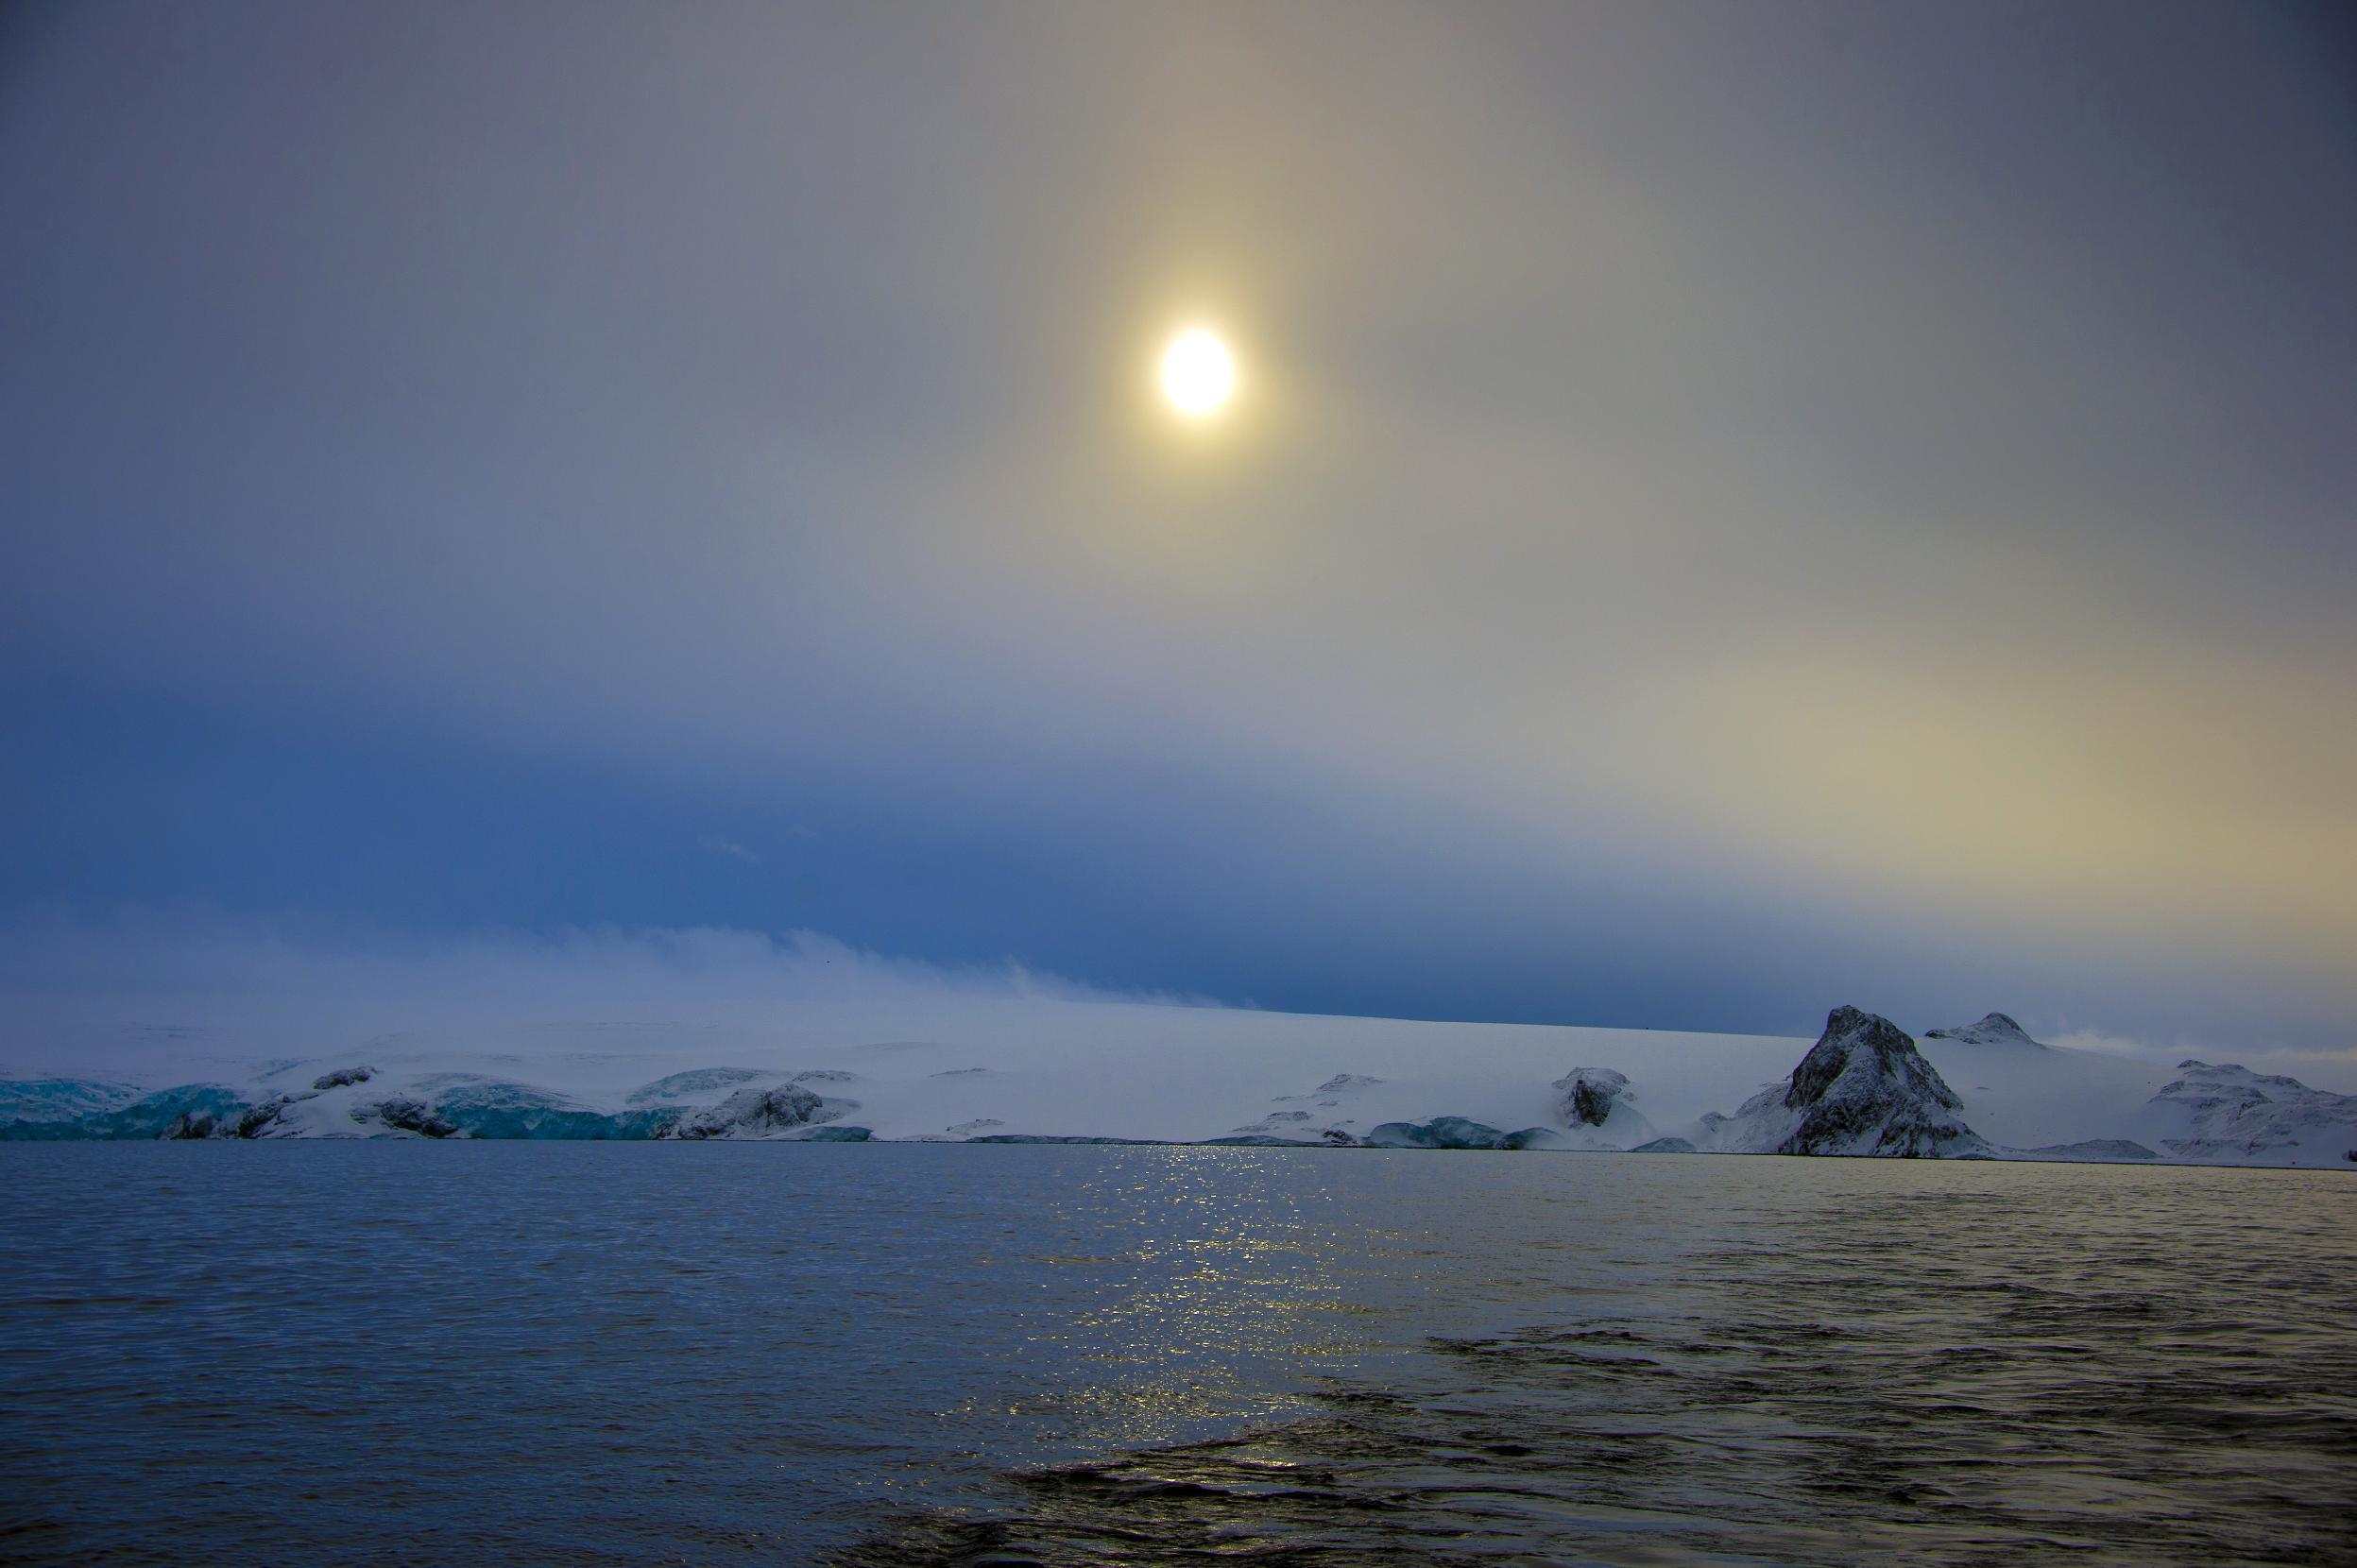 View of Antarctica early in the morning after a snow shower, on March 13, 2014